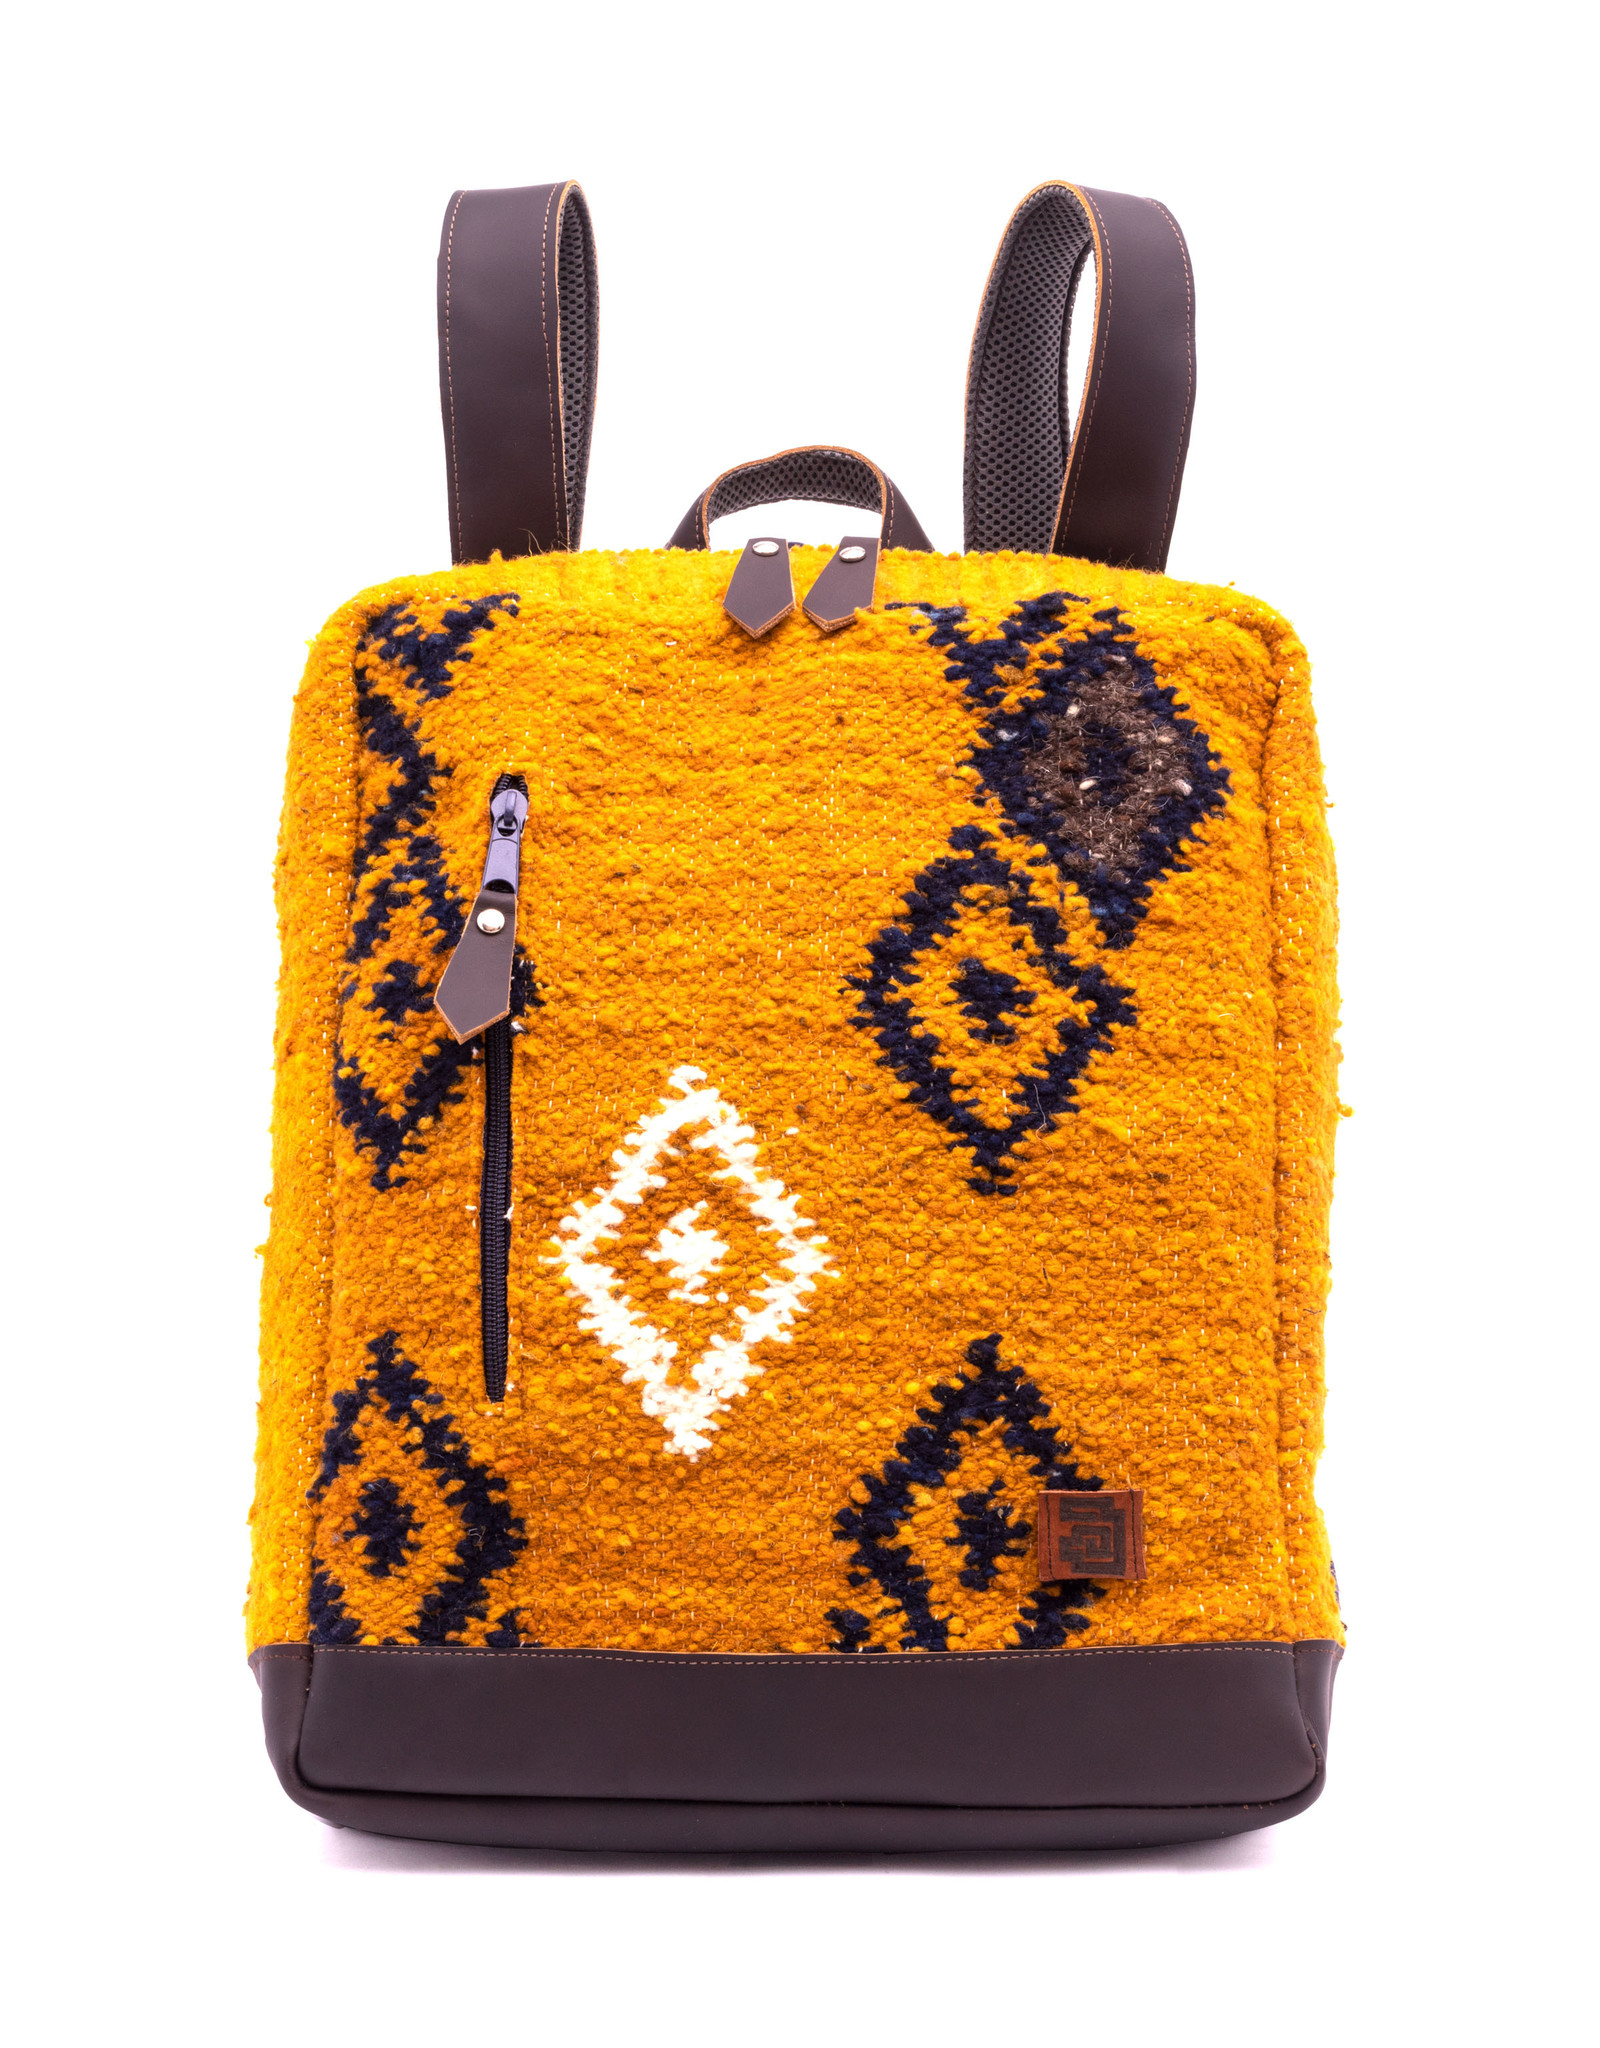 Elementos Wool Backpack - Fuego